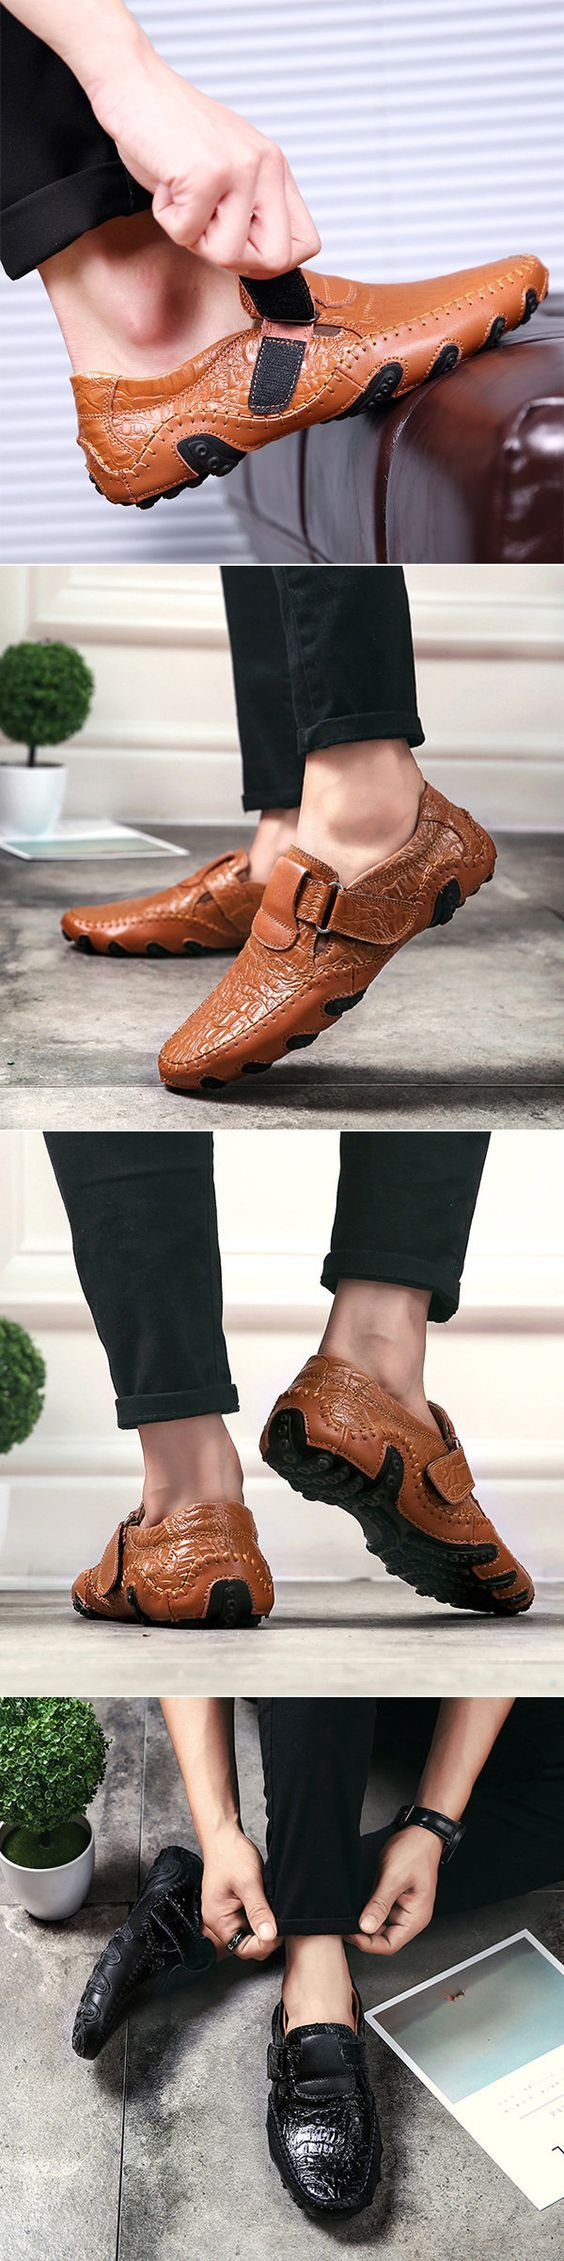 Big Size Handmade Genuine Leather Loafers Stitching Soft Sole Casual Driving Shoes